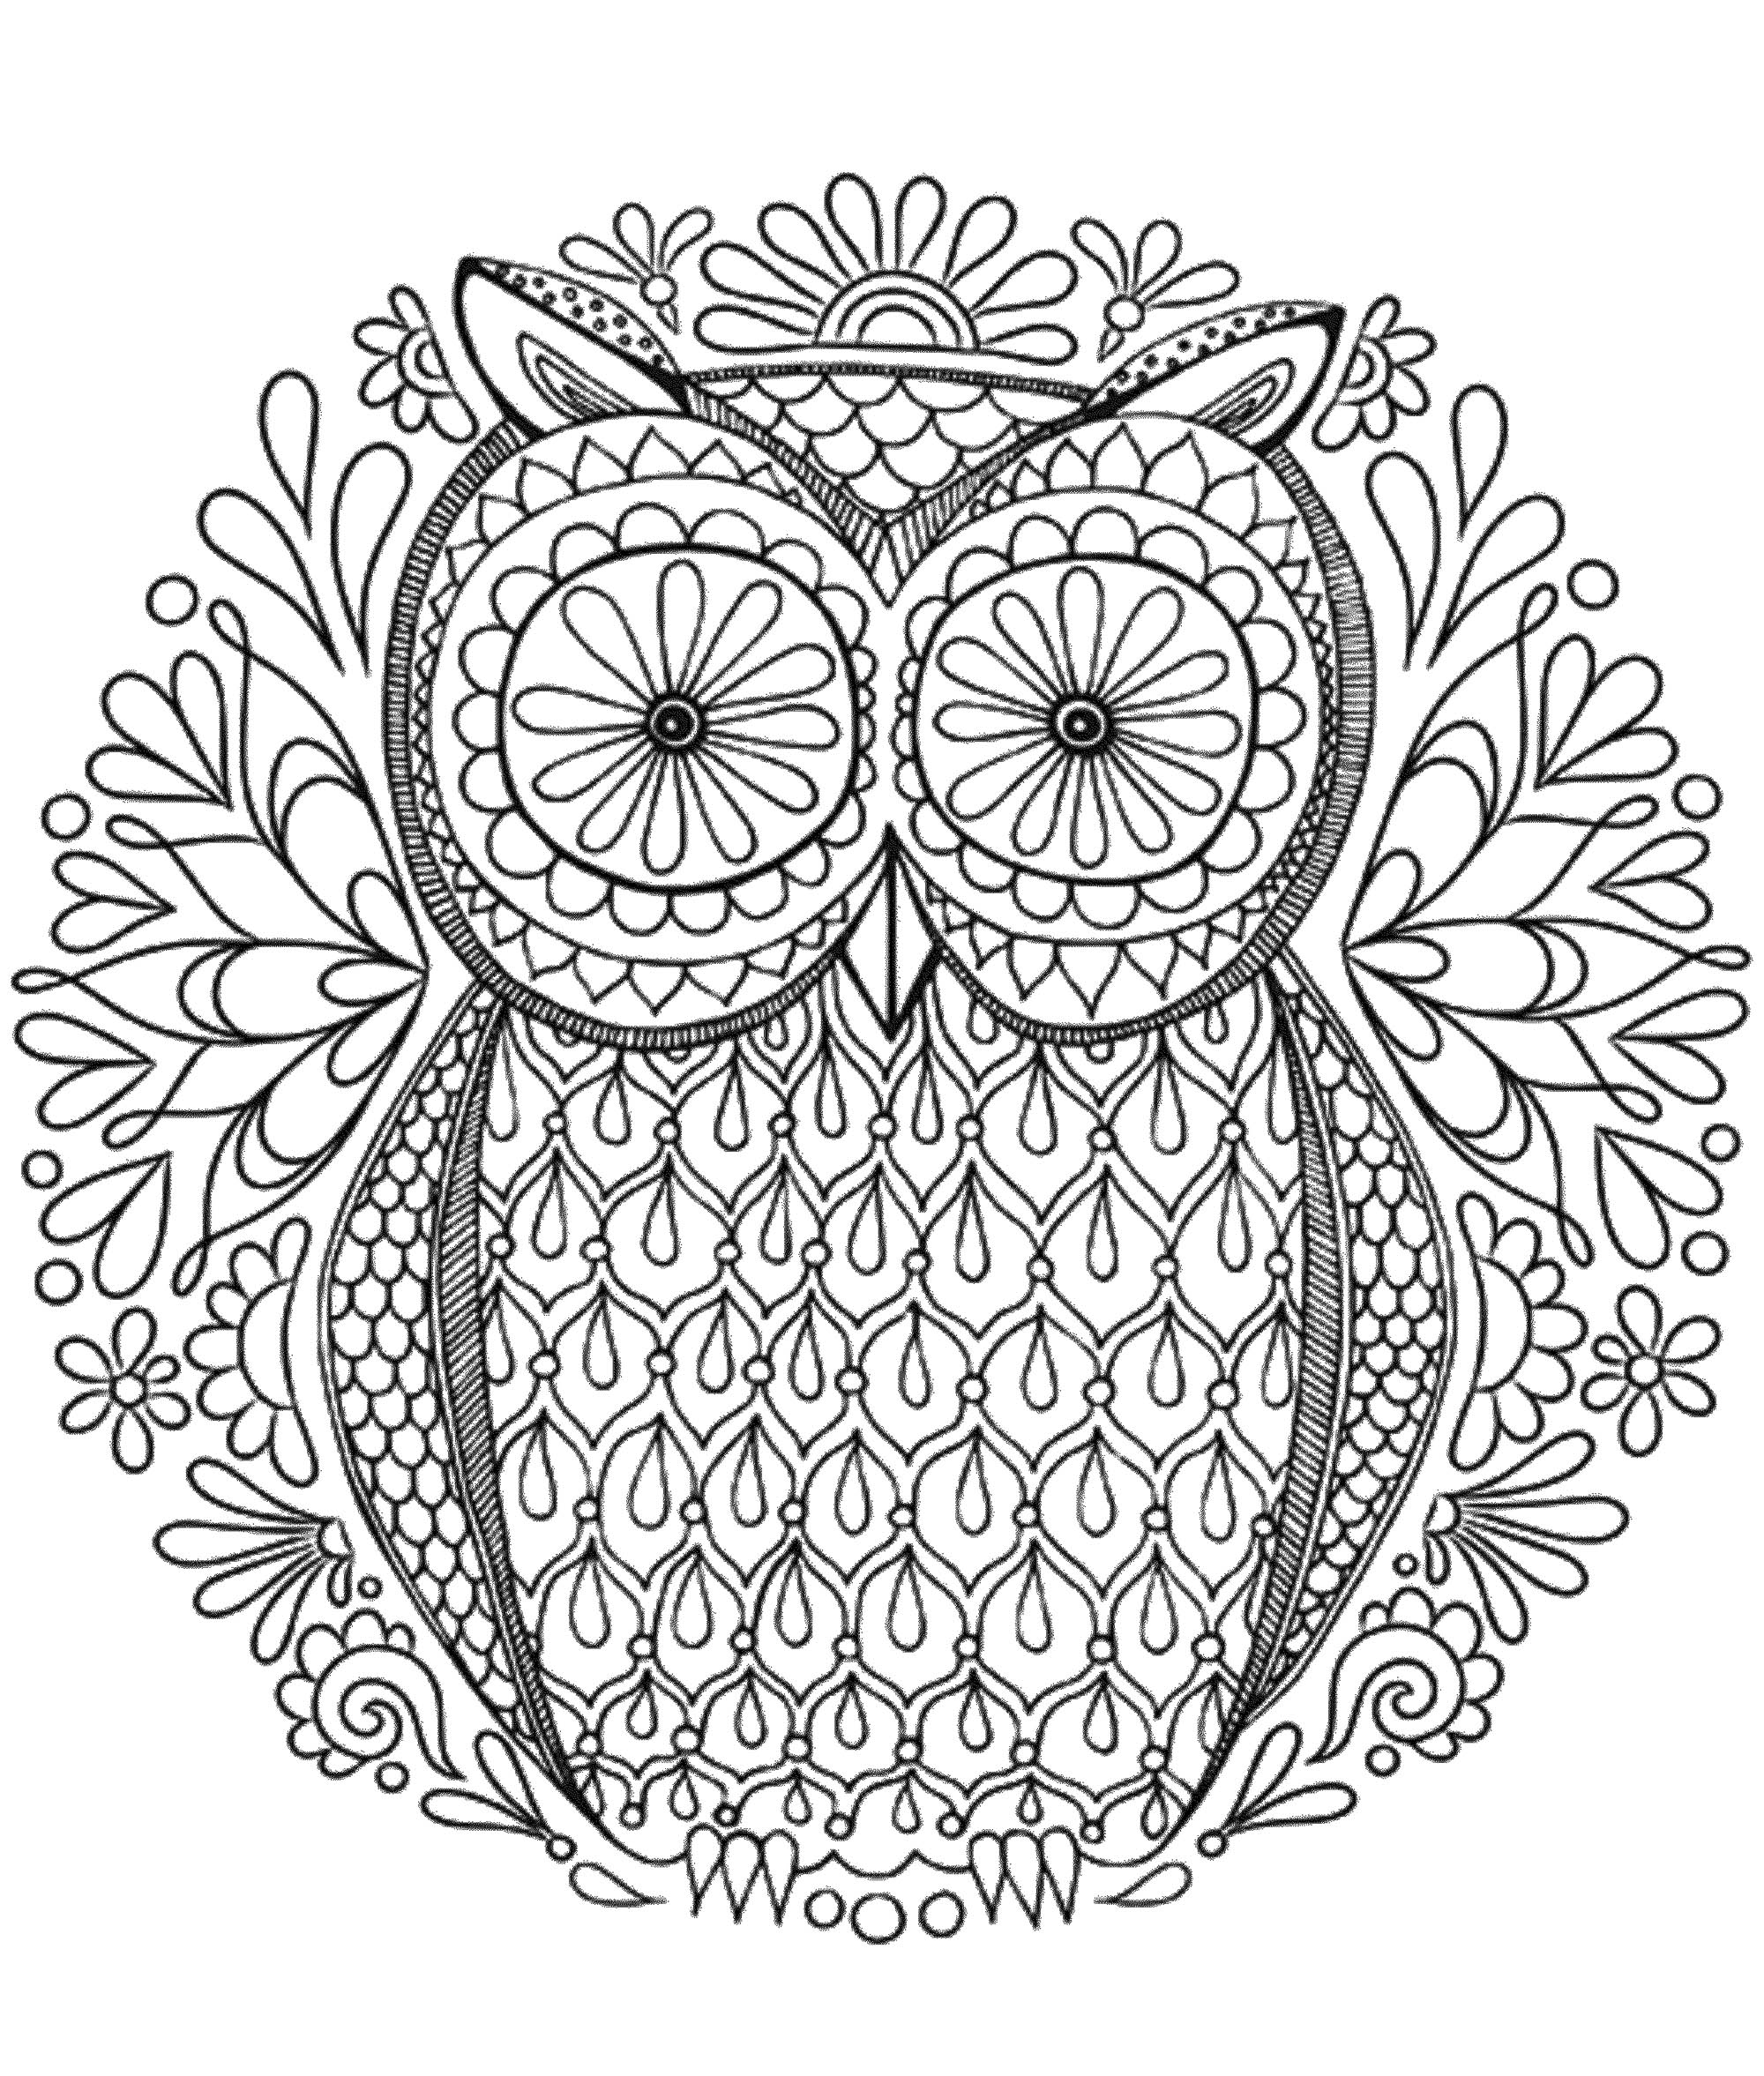 mandalas to color free flower mandala coloring pages best coloring pages for kids to free mandalas color 1 1